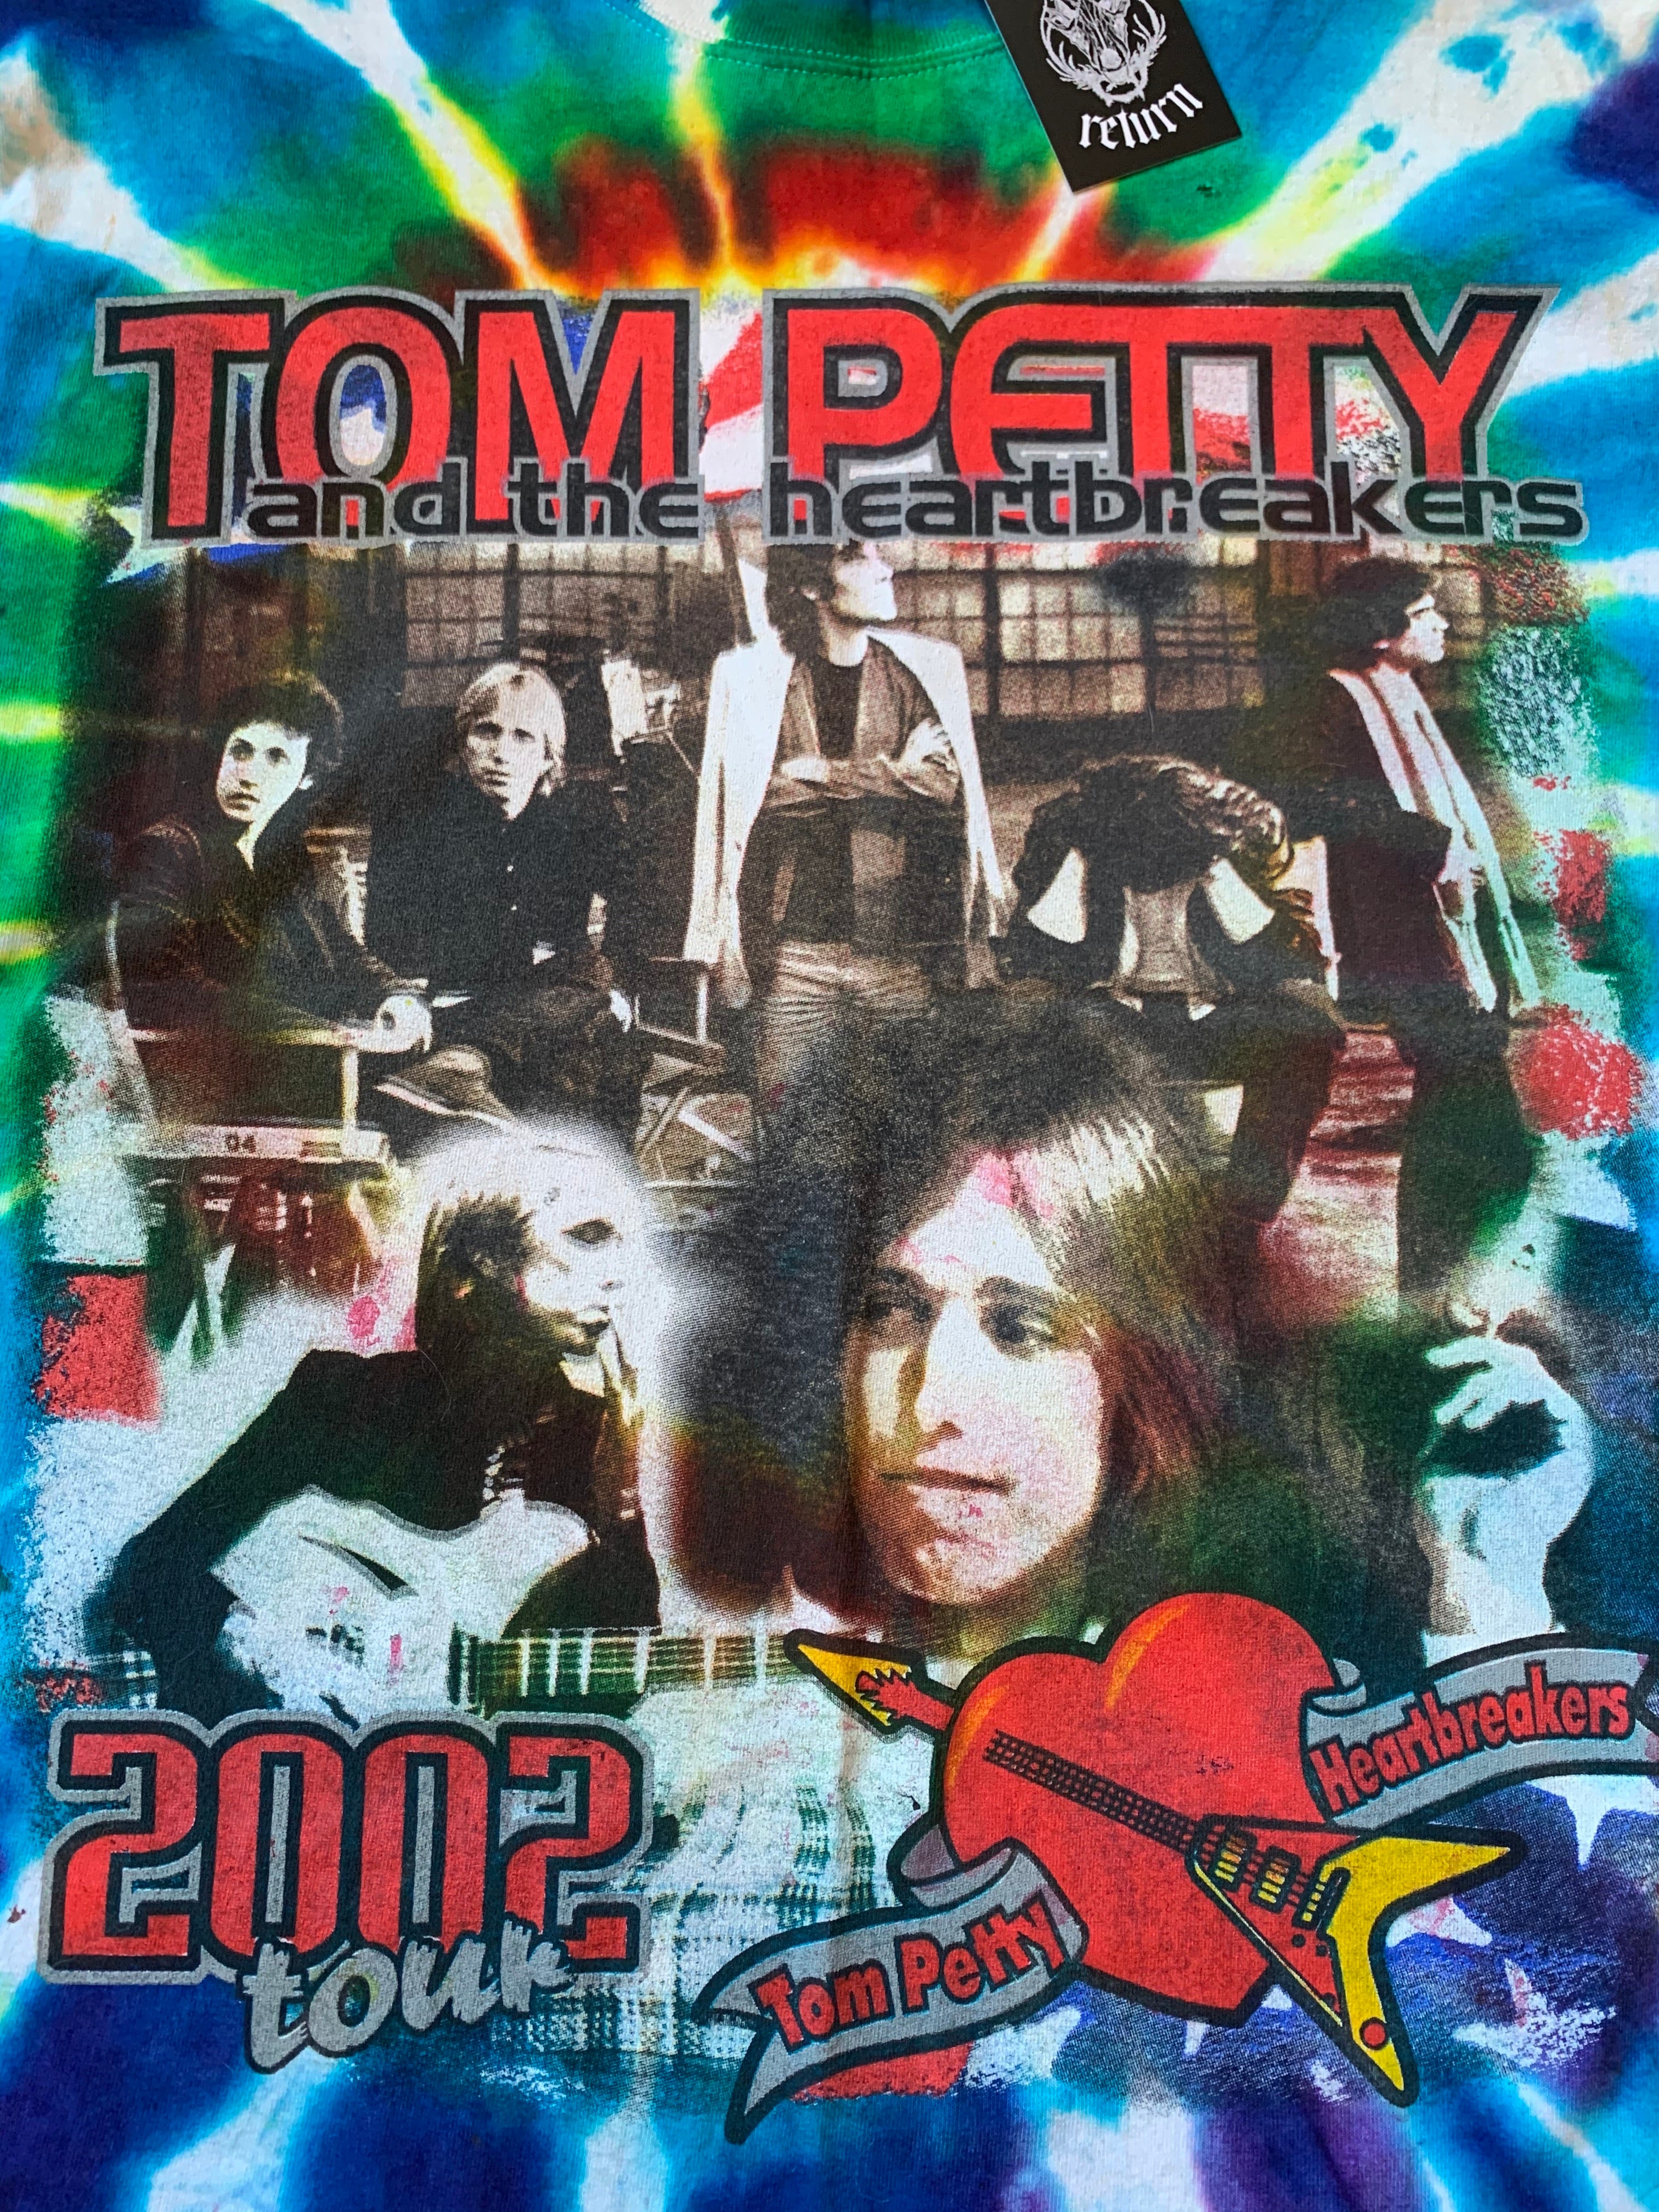 2002 Tom Petty and the Heartbreakers Tie Dye Tour Tee